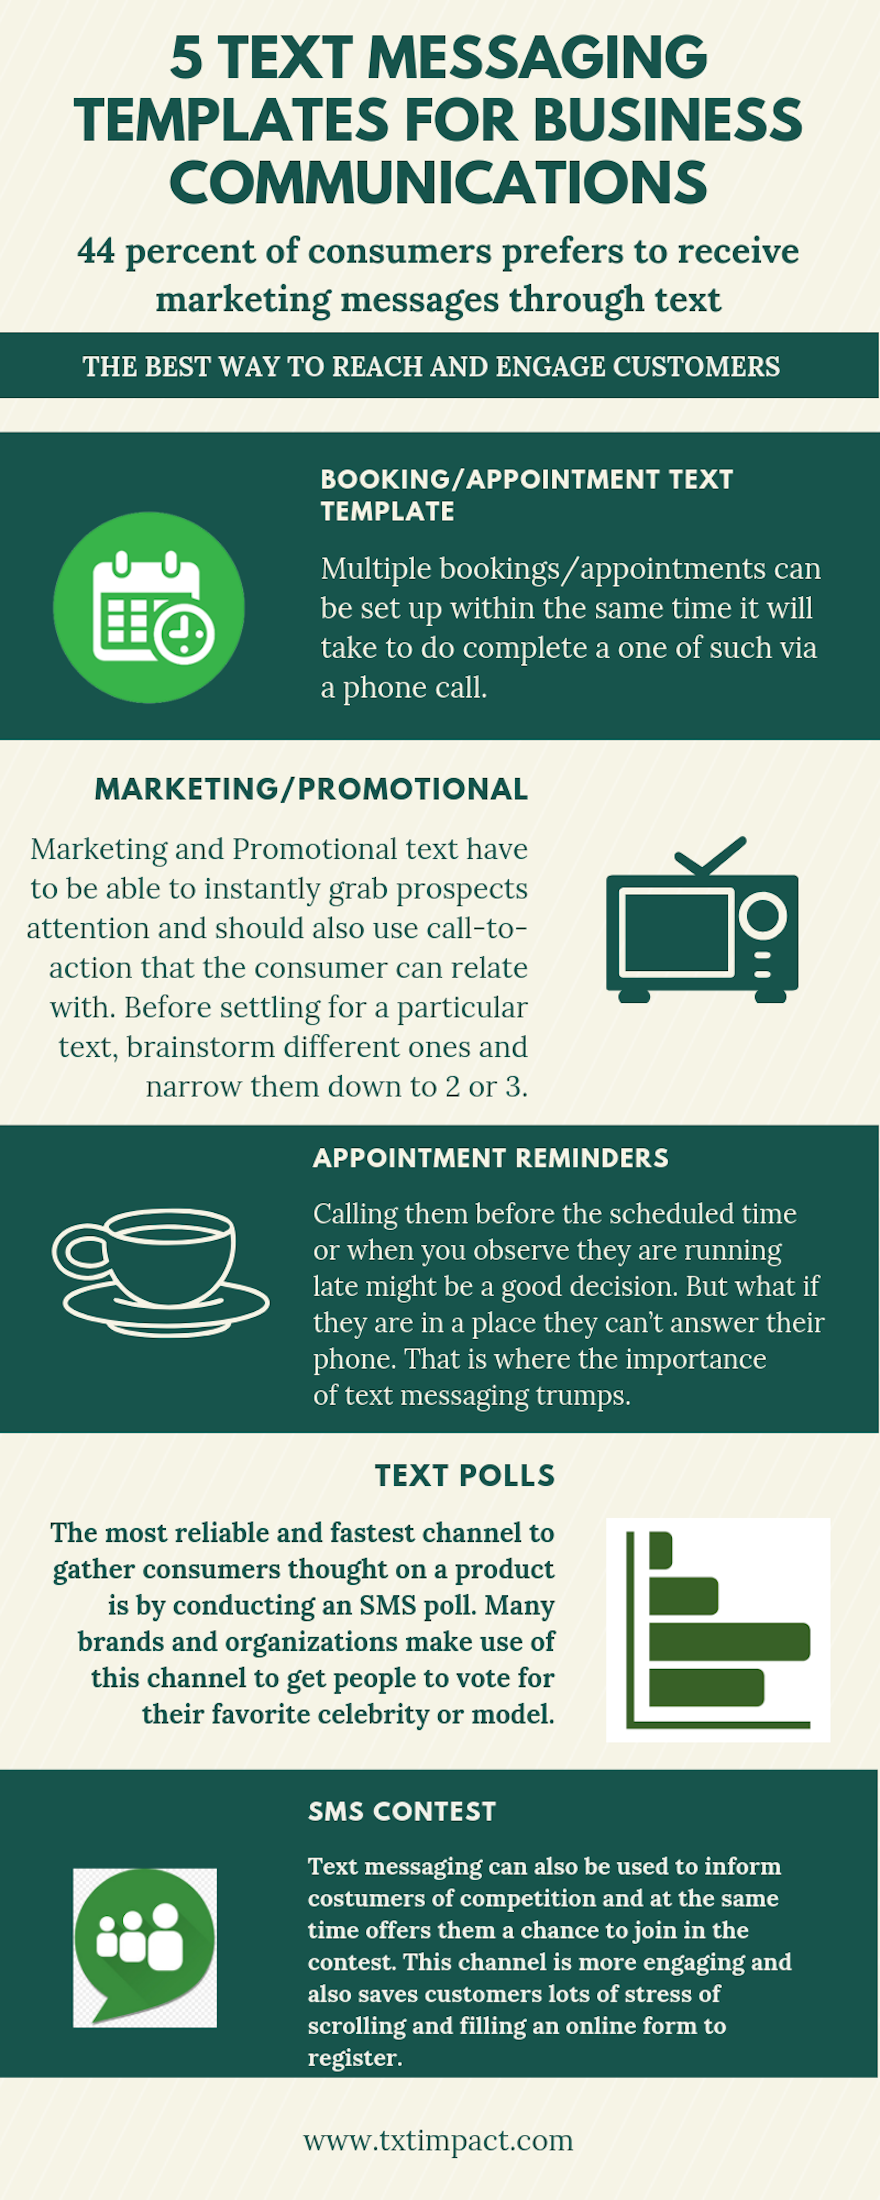 5 TEXT MESSAGING TEMPLATES FOR BUSINESS COMMUNICATIONS